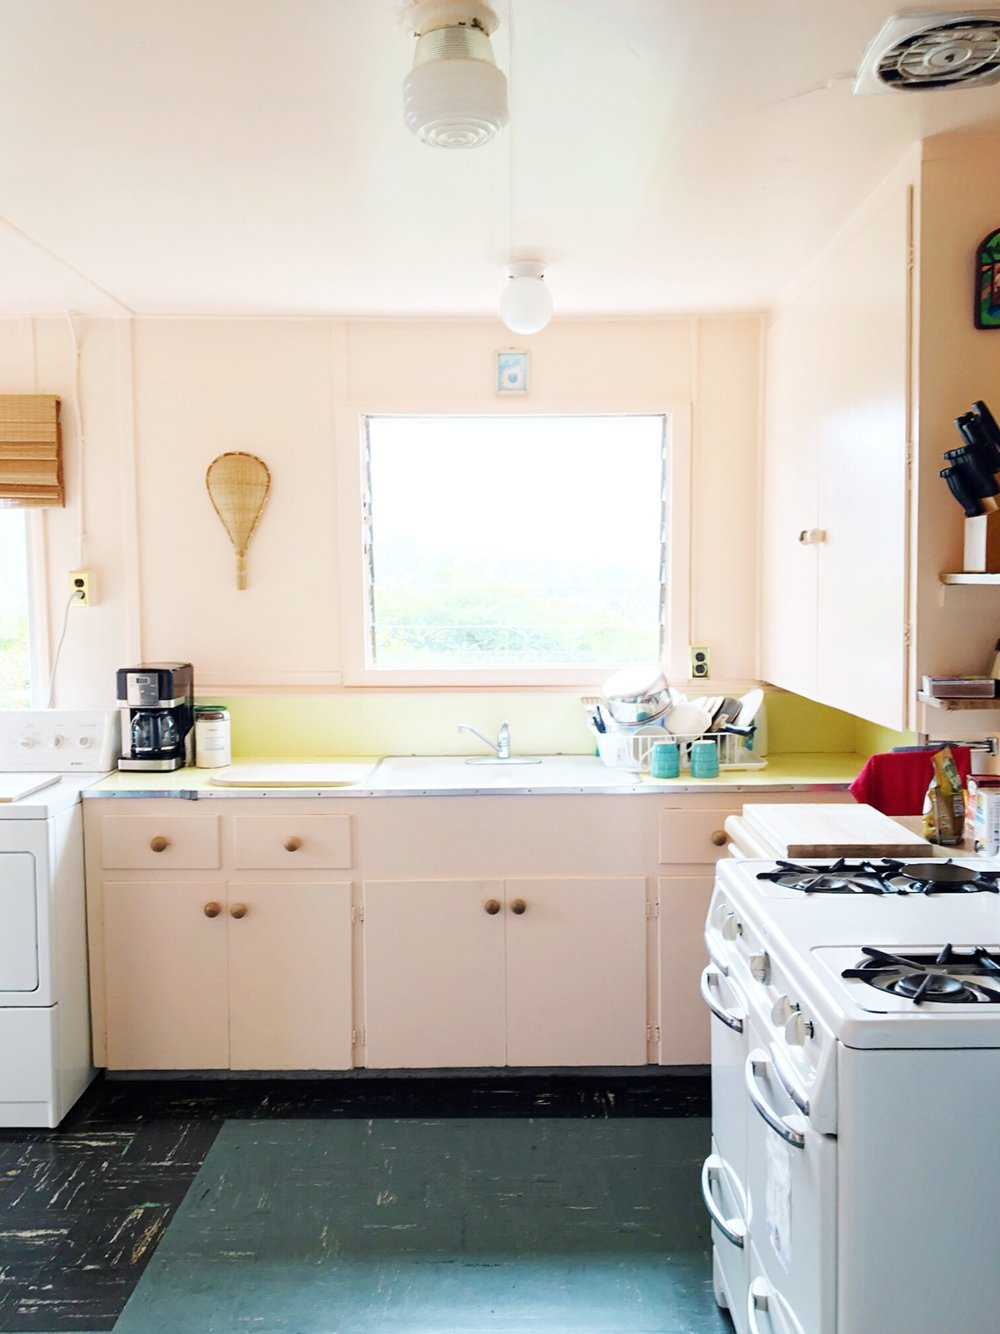 She was inspired in part by this blush kitchen in a  CA Airbnb  she stayed in last summer.